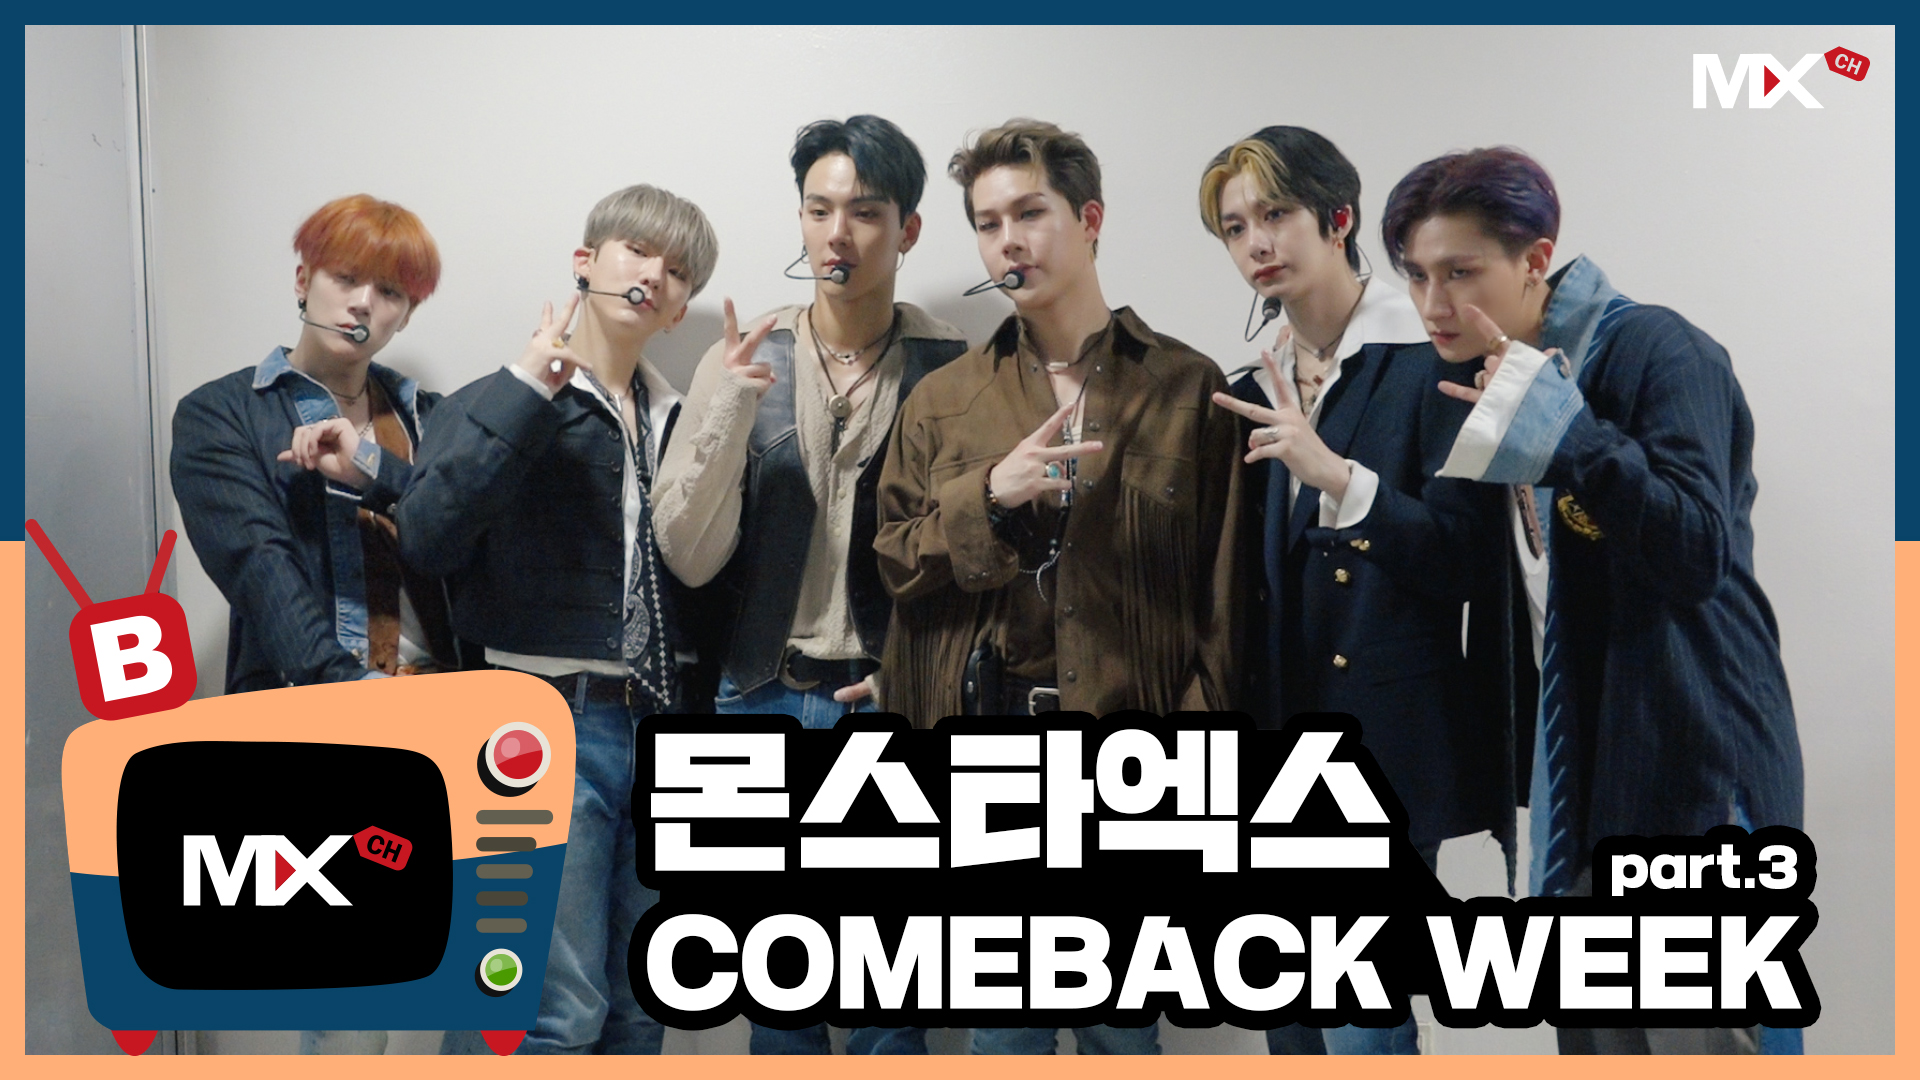 [몬채널][B] EP.182 'FANTASIA' COMEBACK WEEK part.3